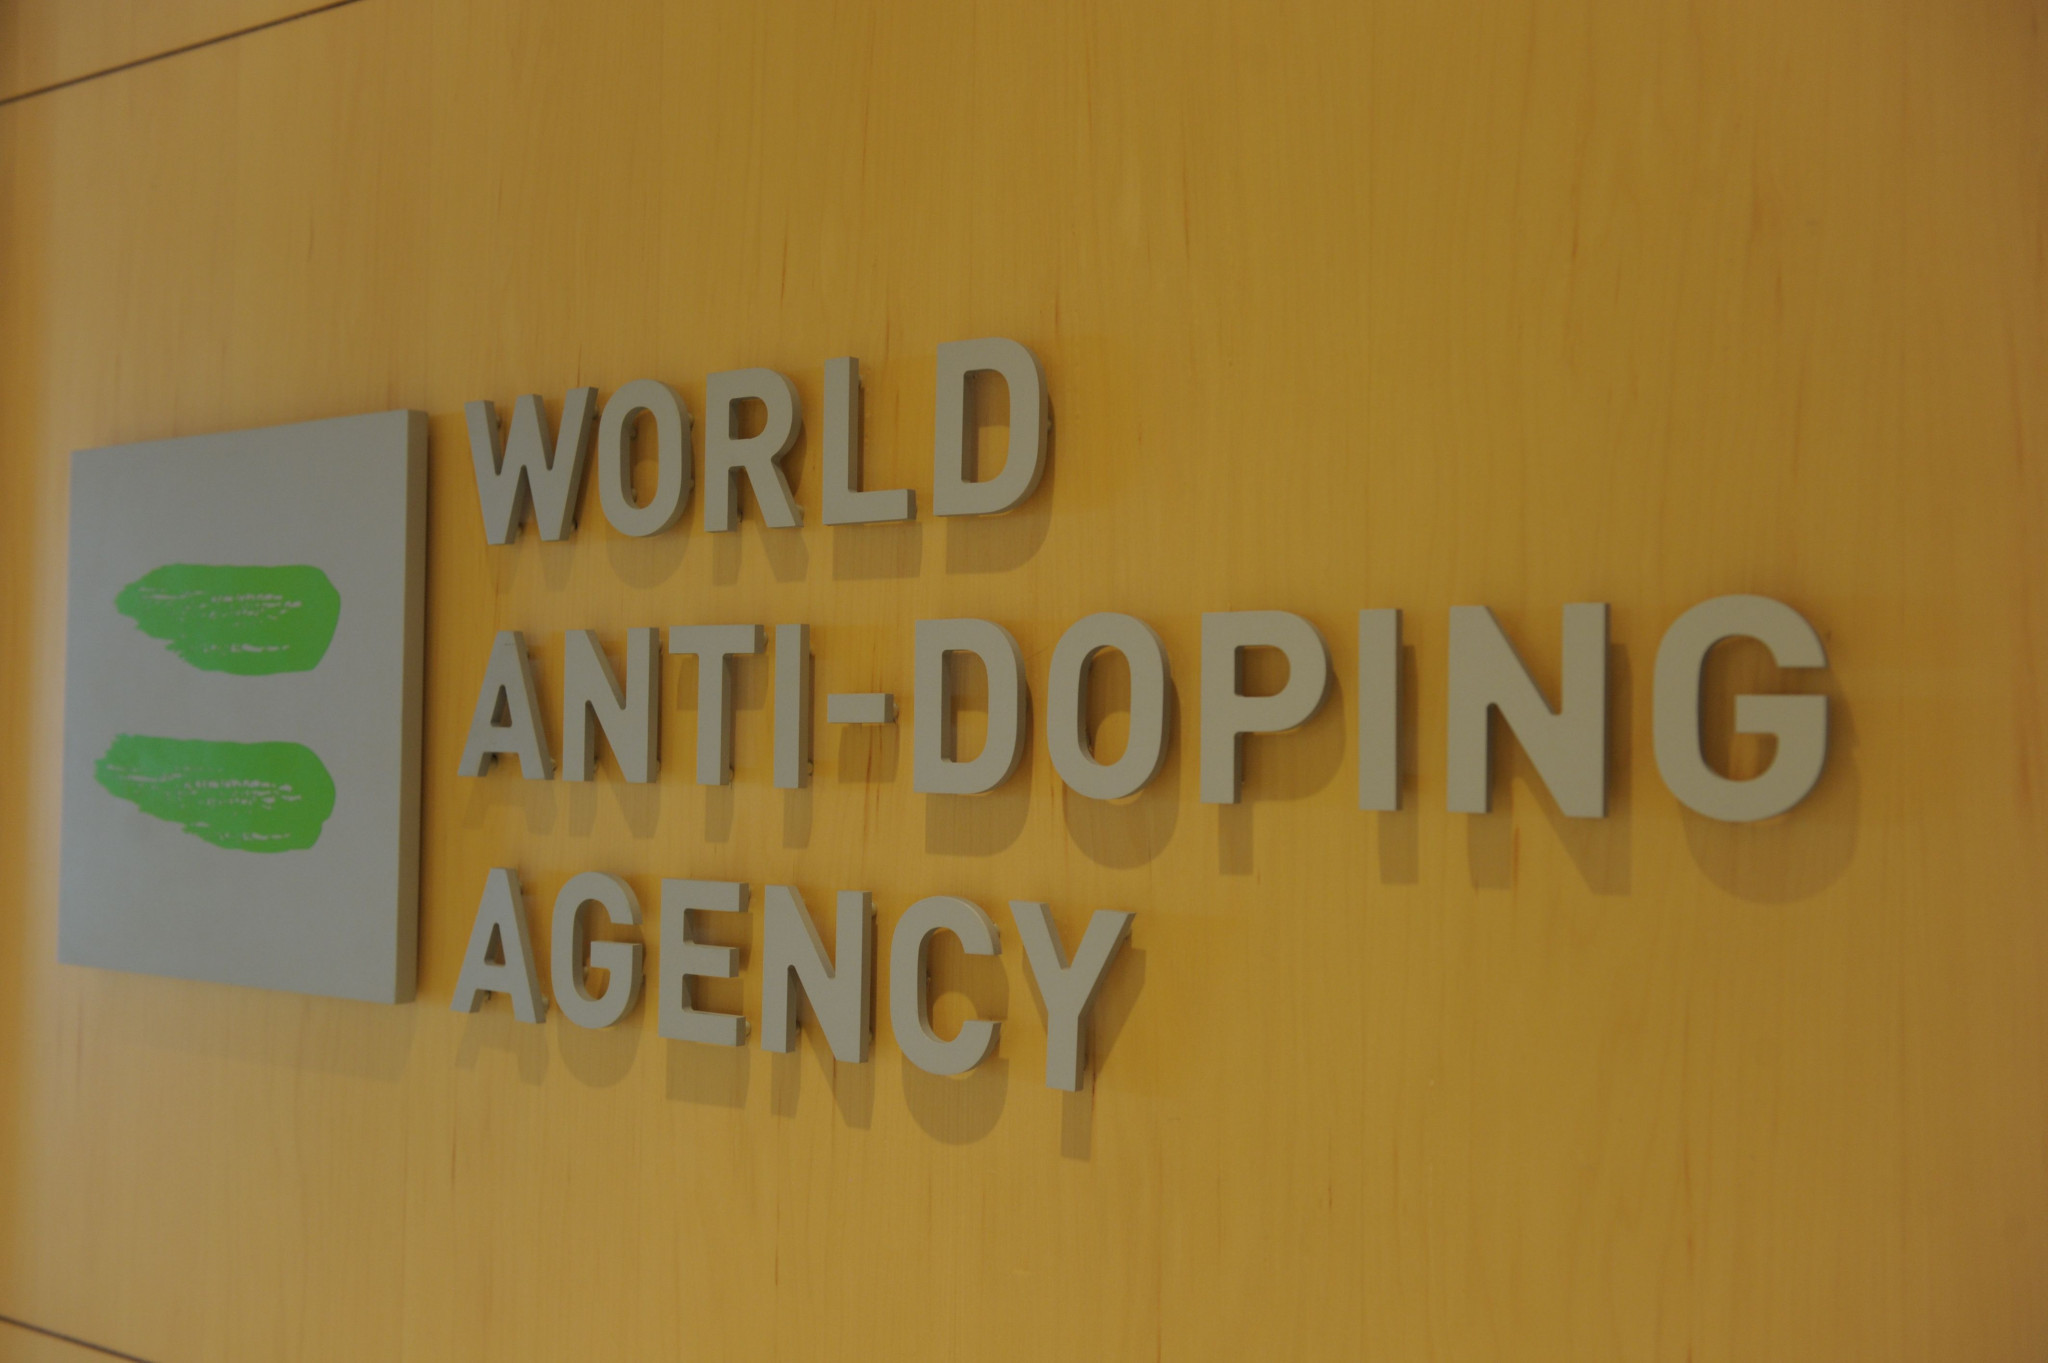 A governance review of the World Anti-Doping Agency by the Institute of National Anti-Doping Organisations led to the three reforms being put forward ©Getty Images